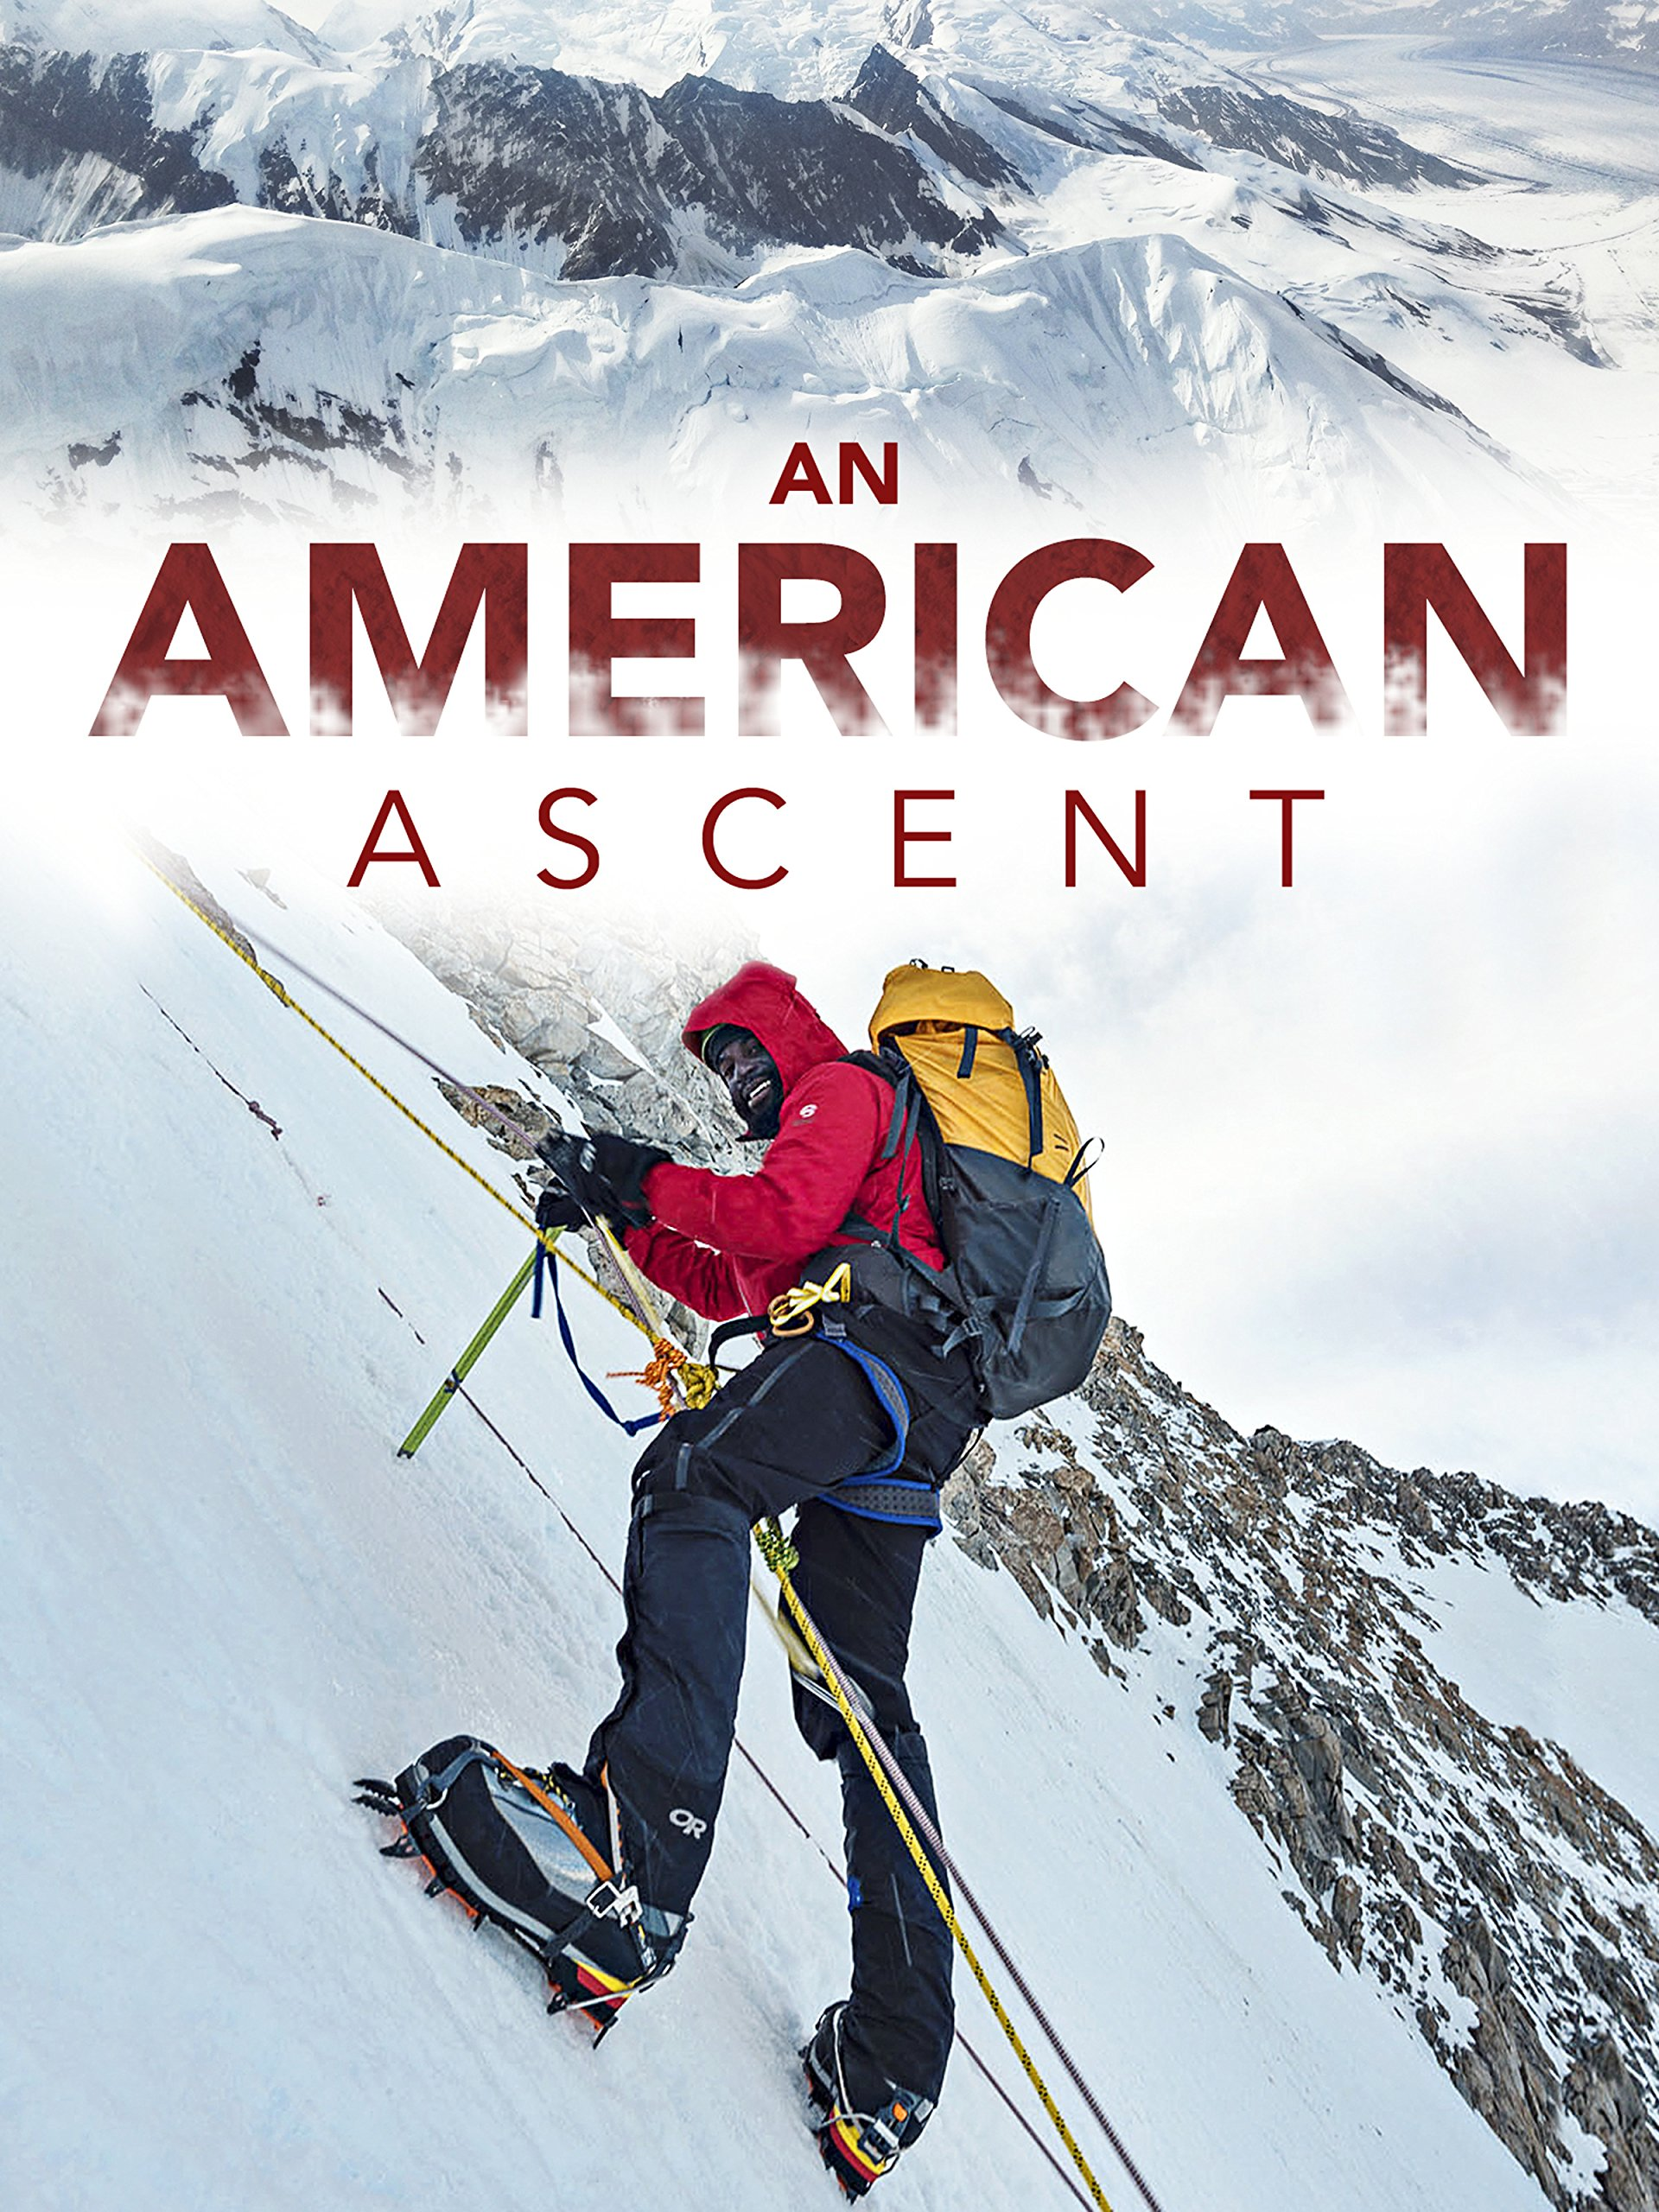 Amazon.com: Watch An American Ascent | Prime Video